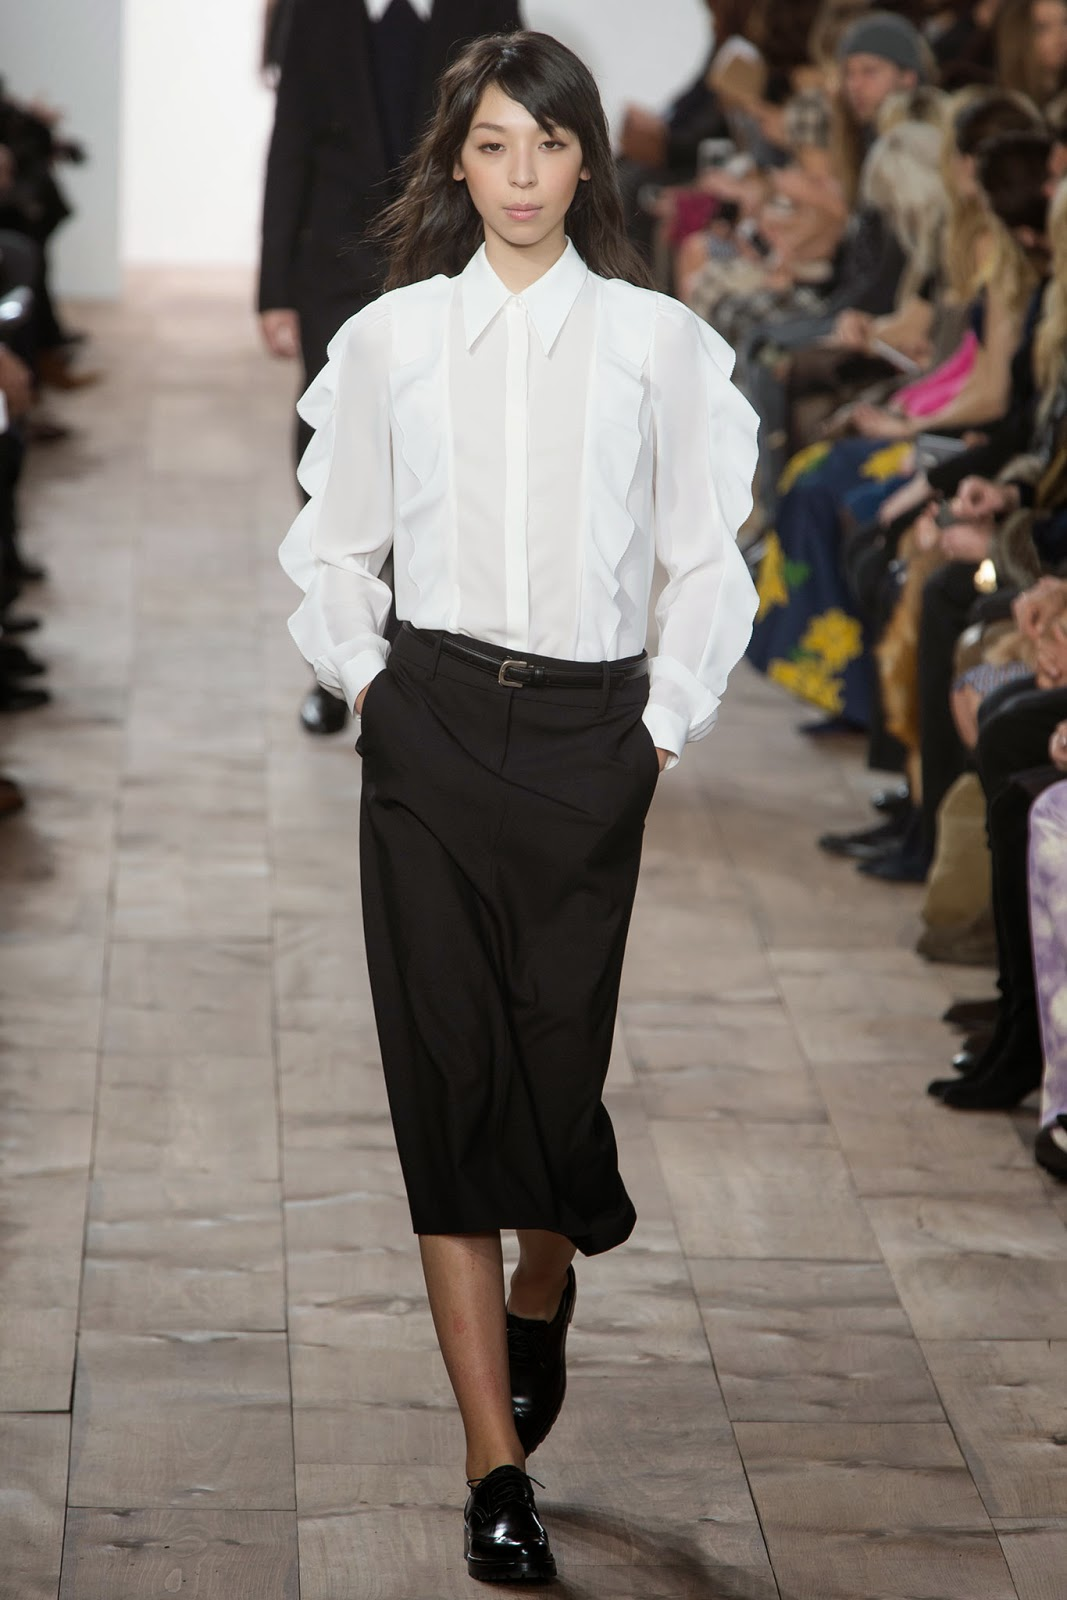 Michael Kors FW15/16 - white shirt with ruffles, black skirt